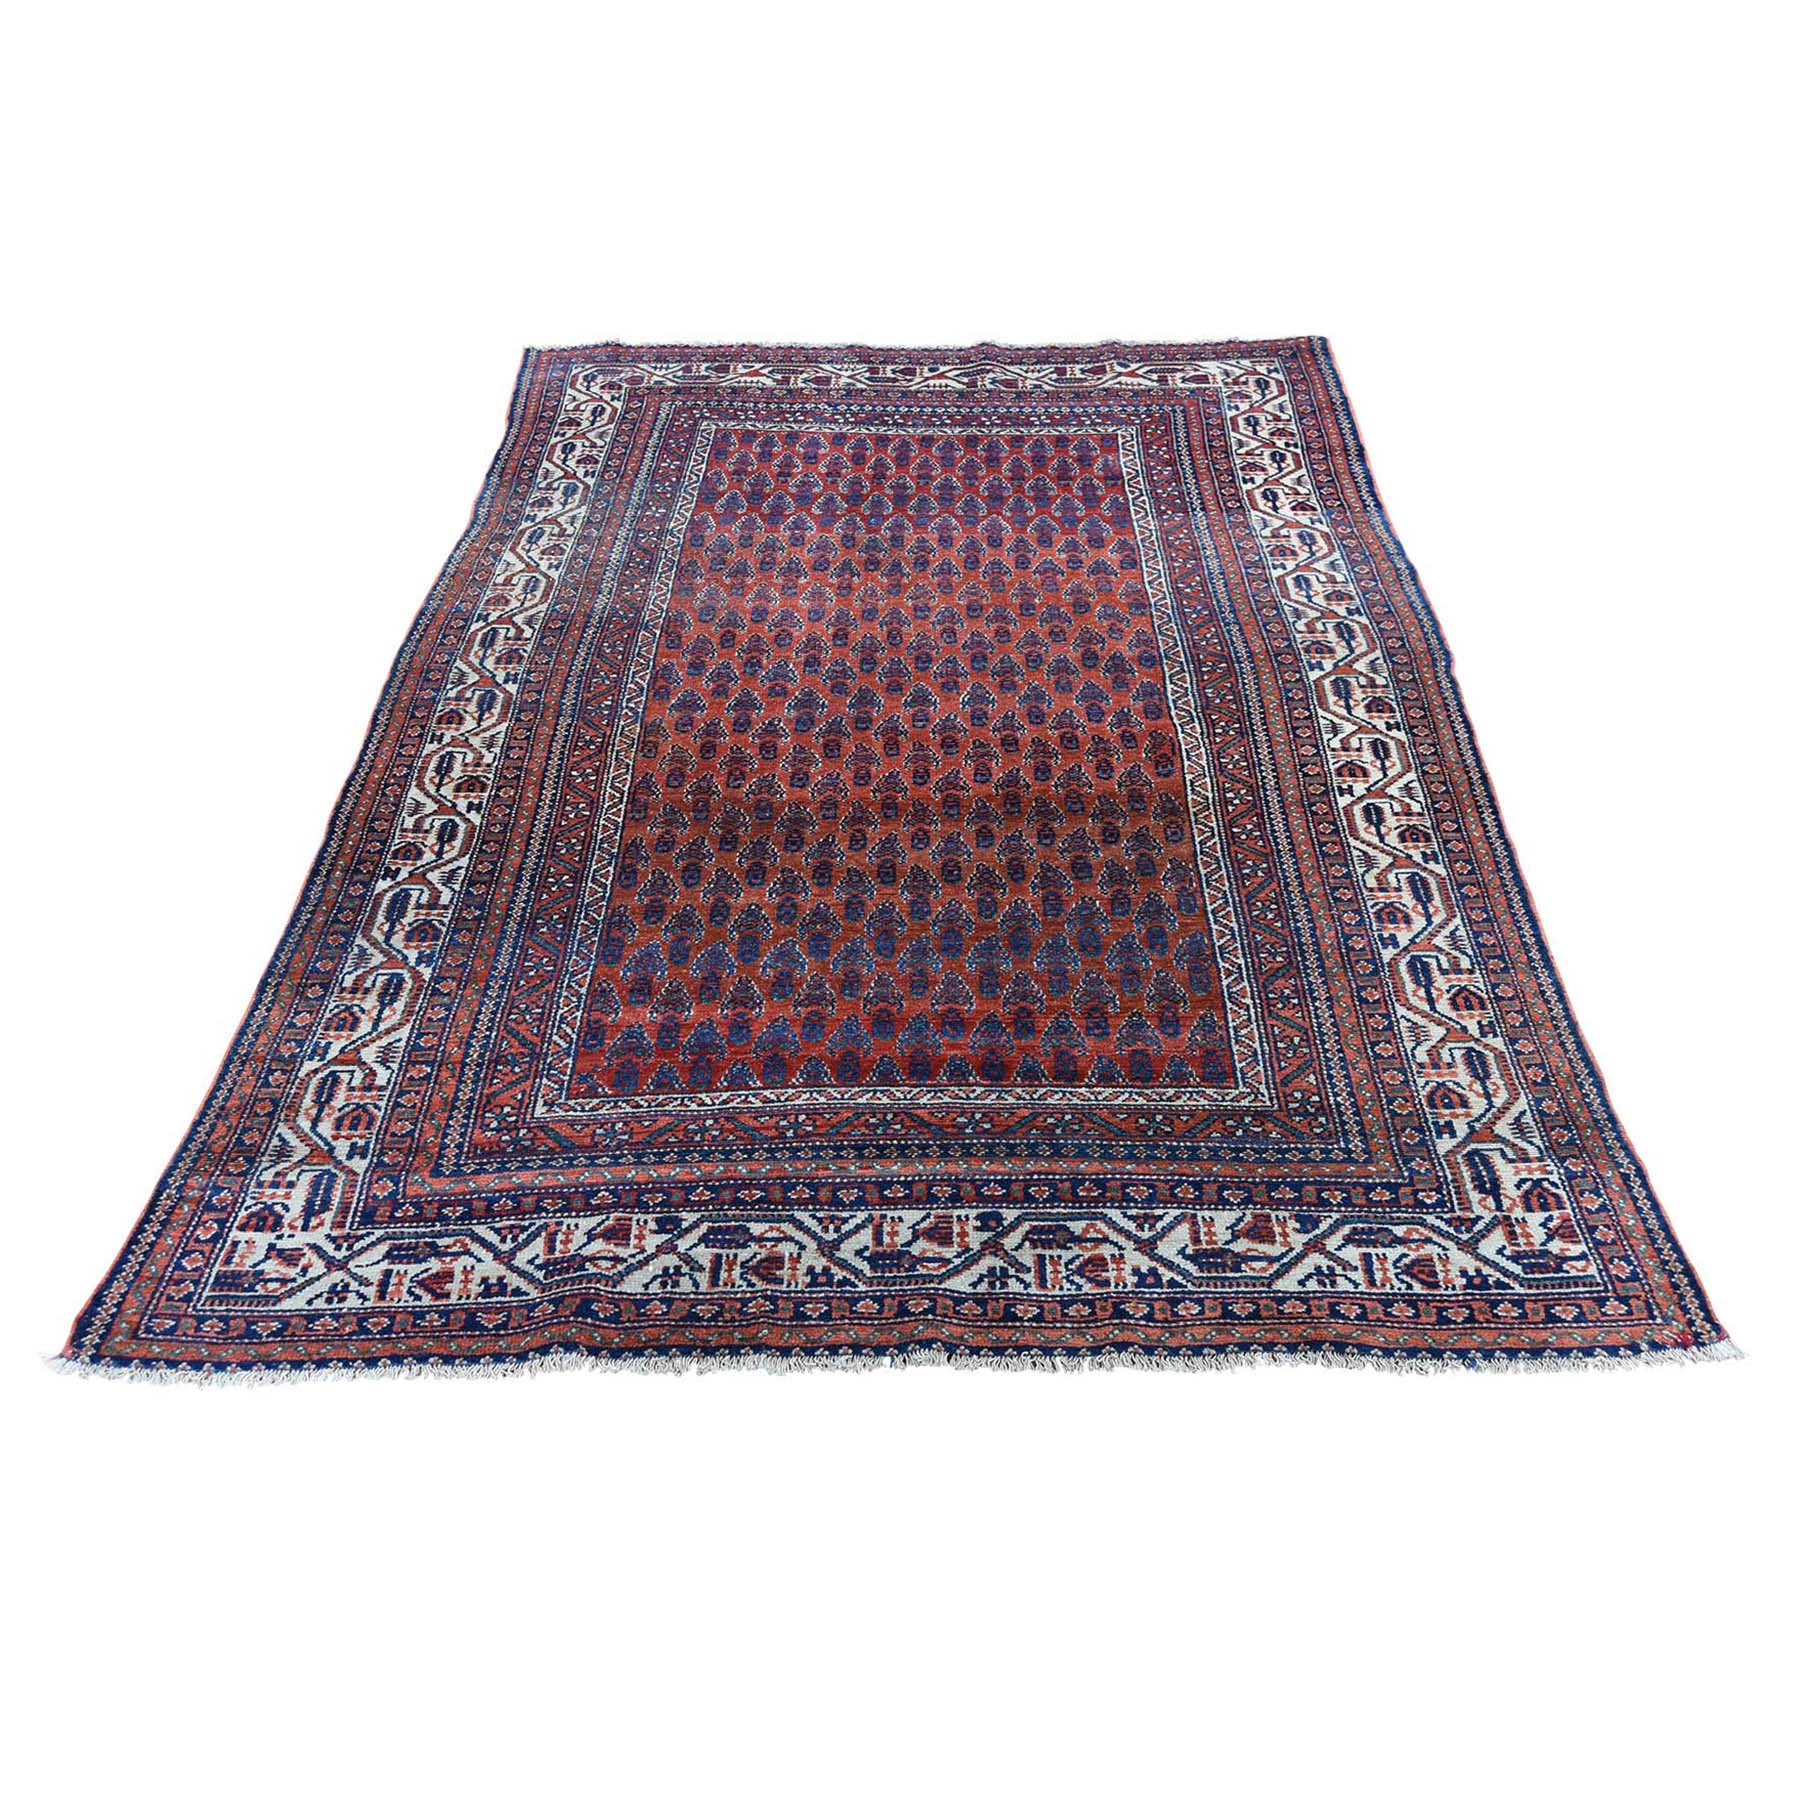 "4'5""X6'5"" Antique Persian Seraband Good Condition Even Wear Pure Wool Hand-Knotted Oriental Rug moad6a9e"